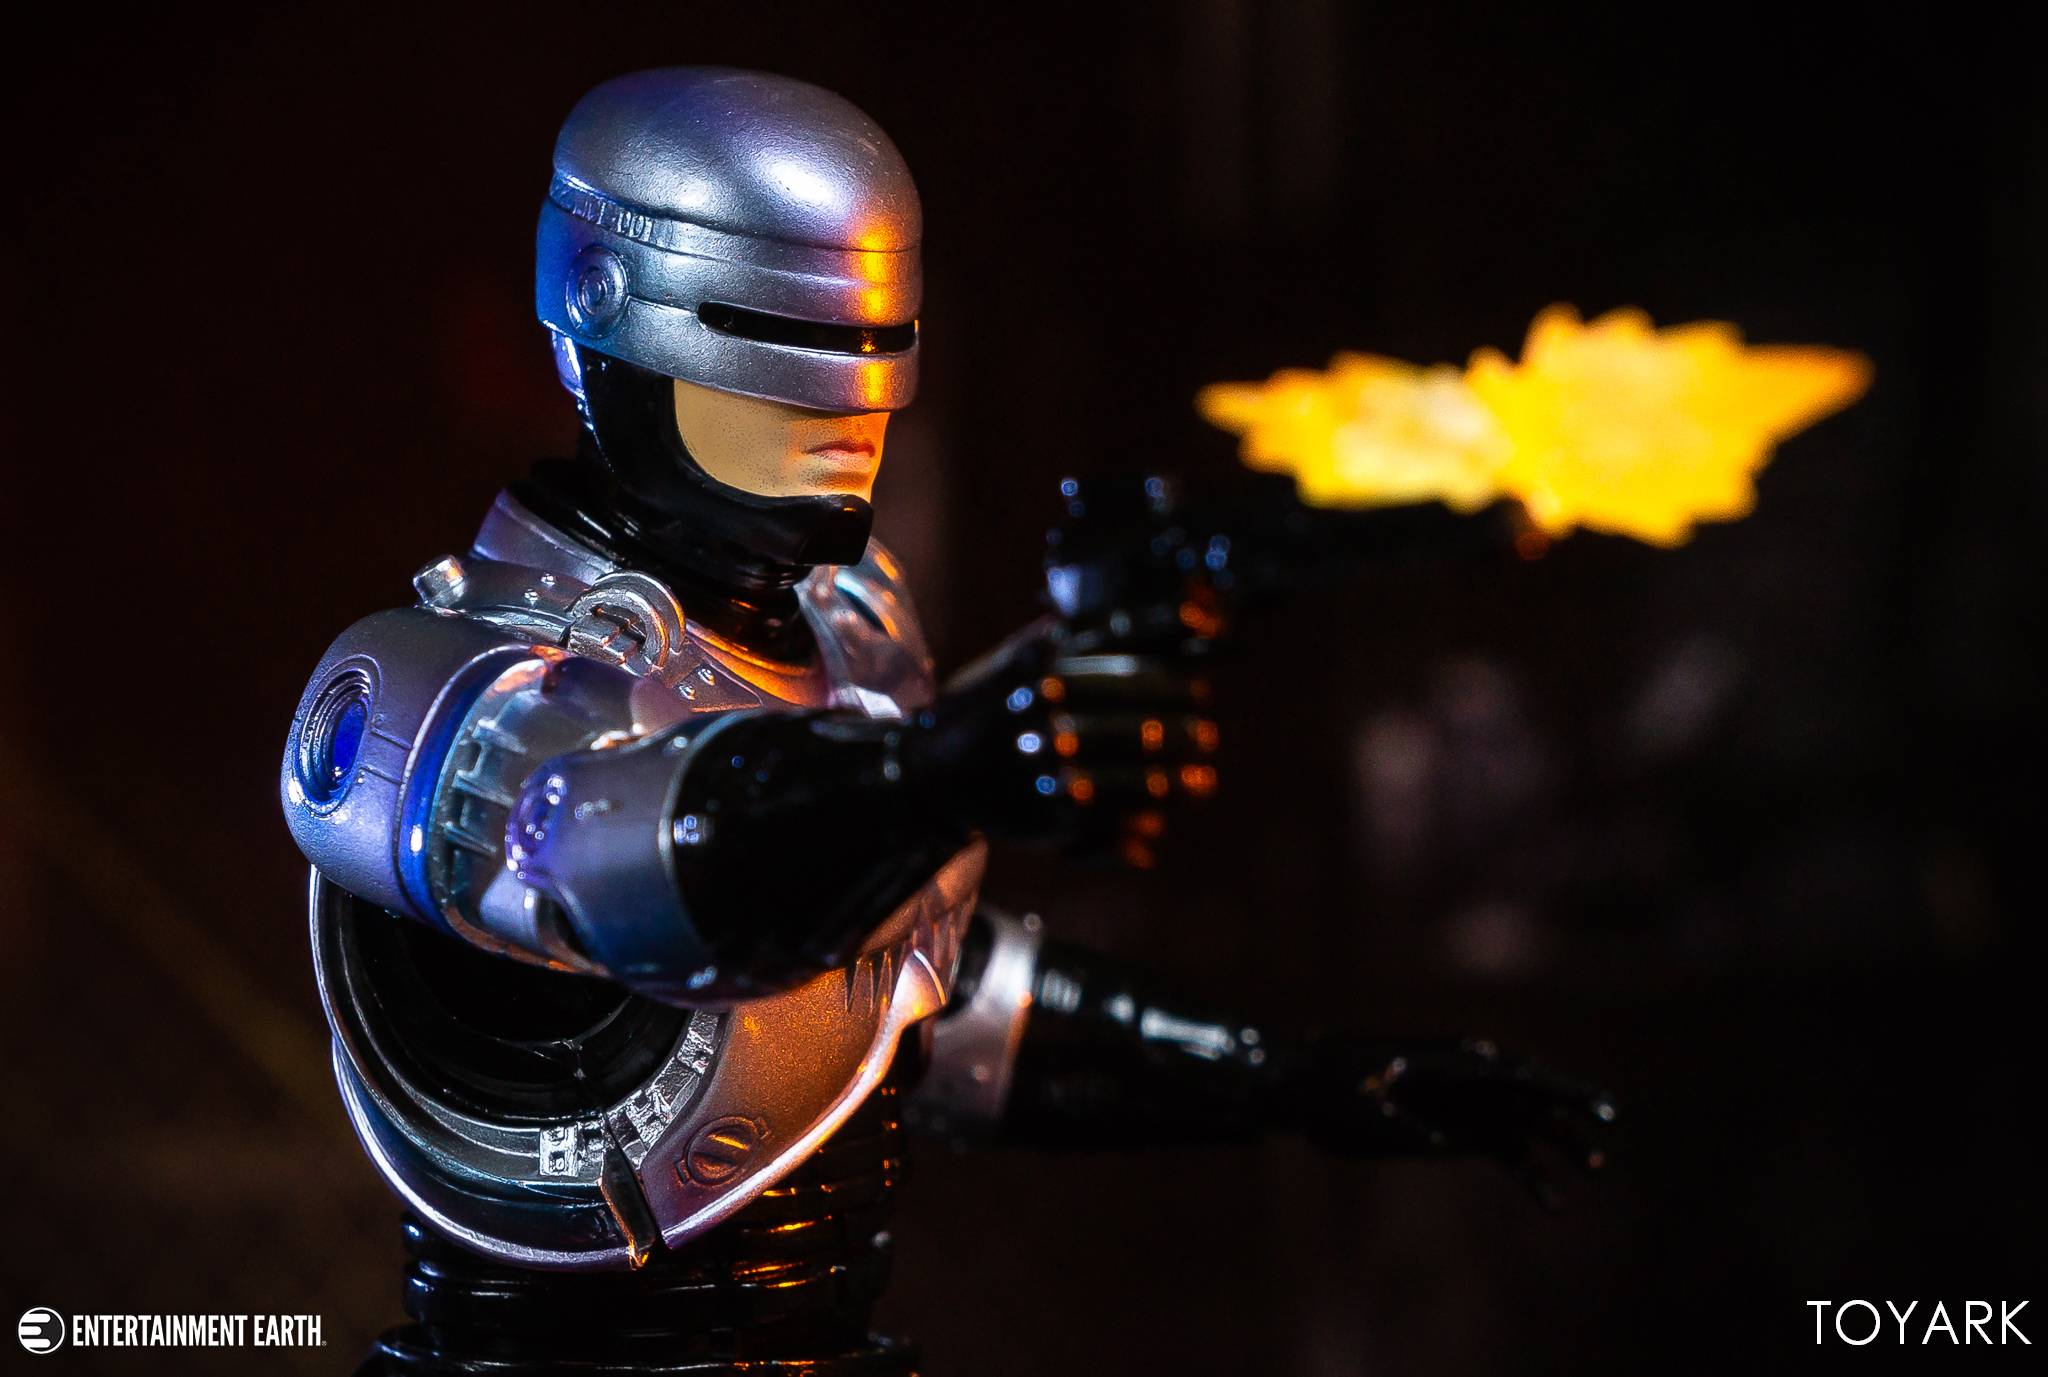 https://news.toyark.com/wp-content/uploads/sites/4/2019/05/MAFEX-Robocop-2-Gallery-030.jpg